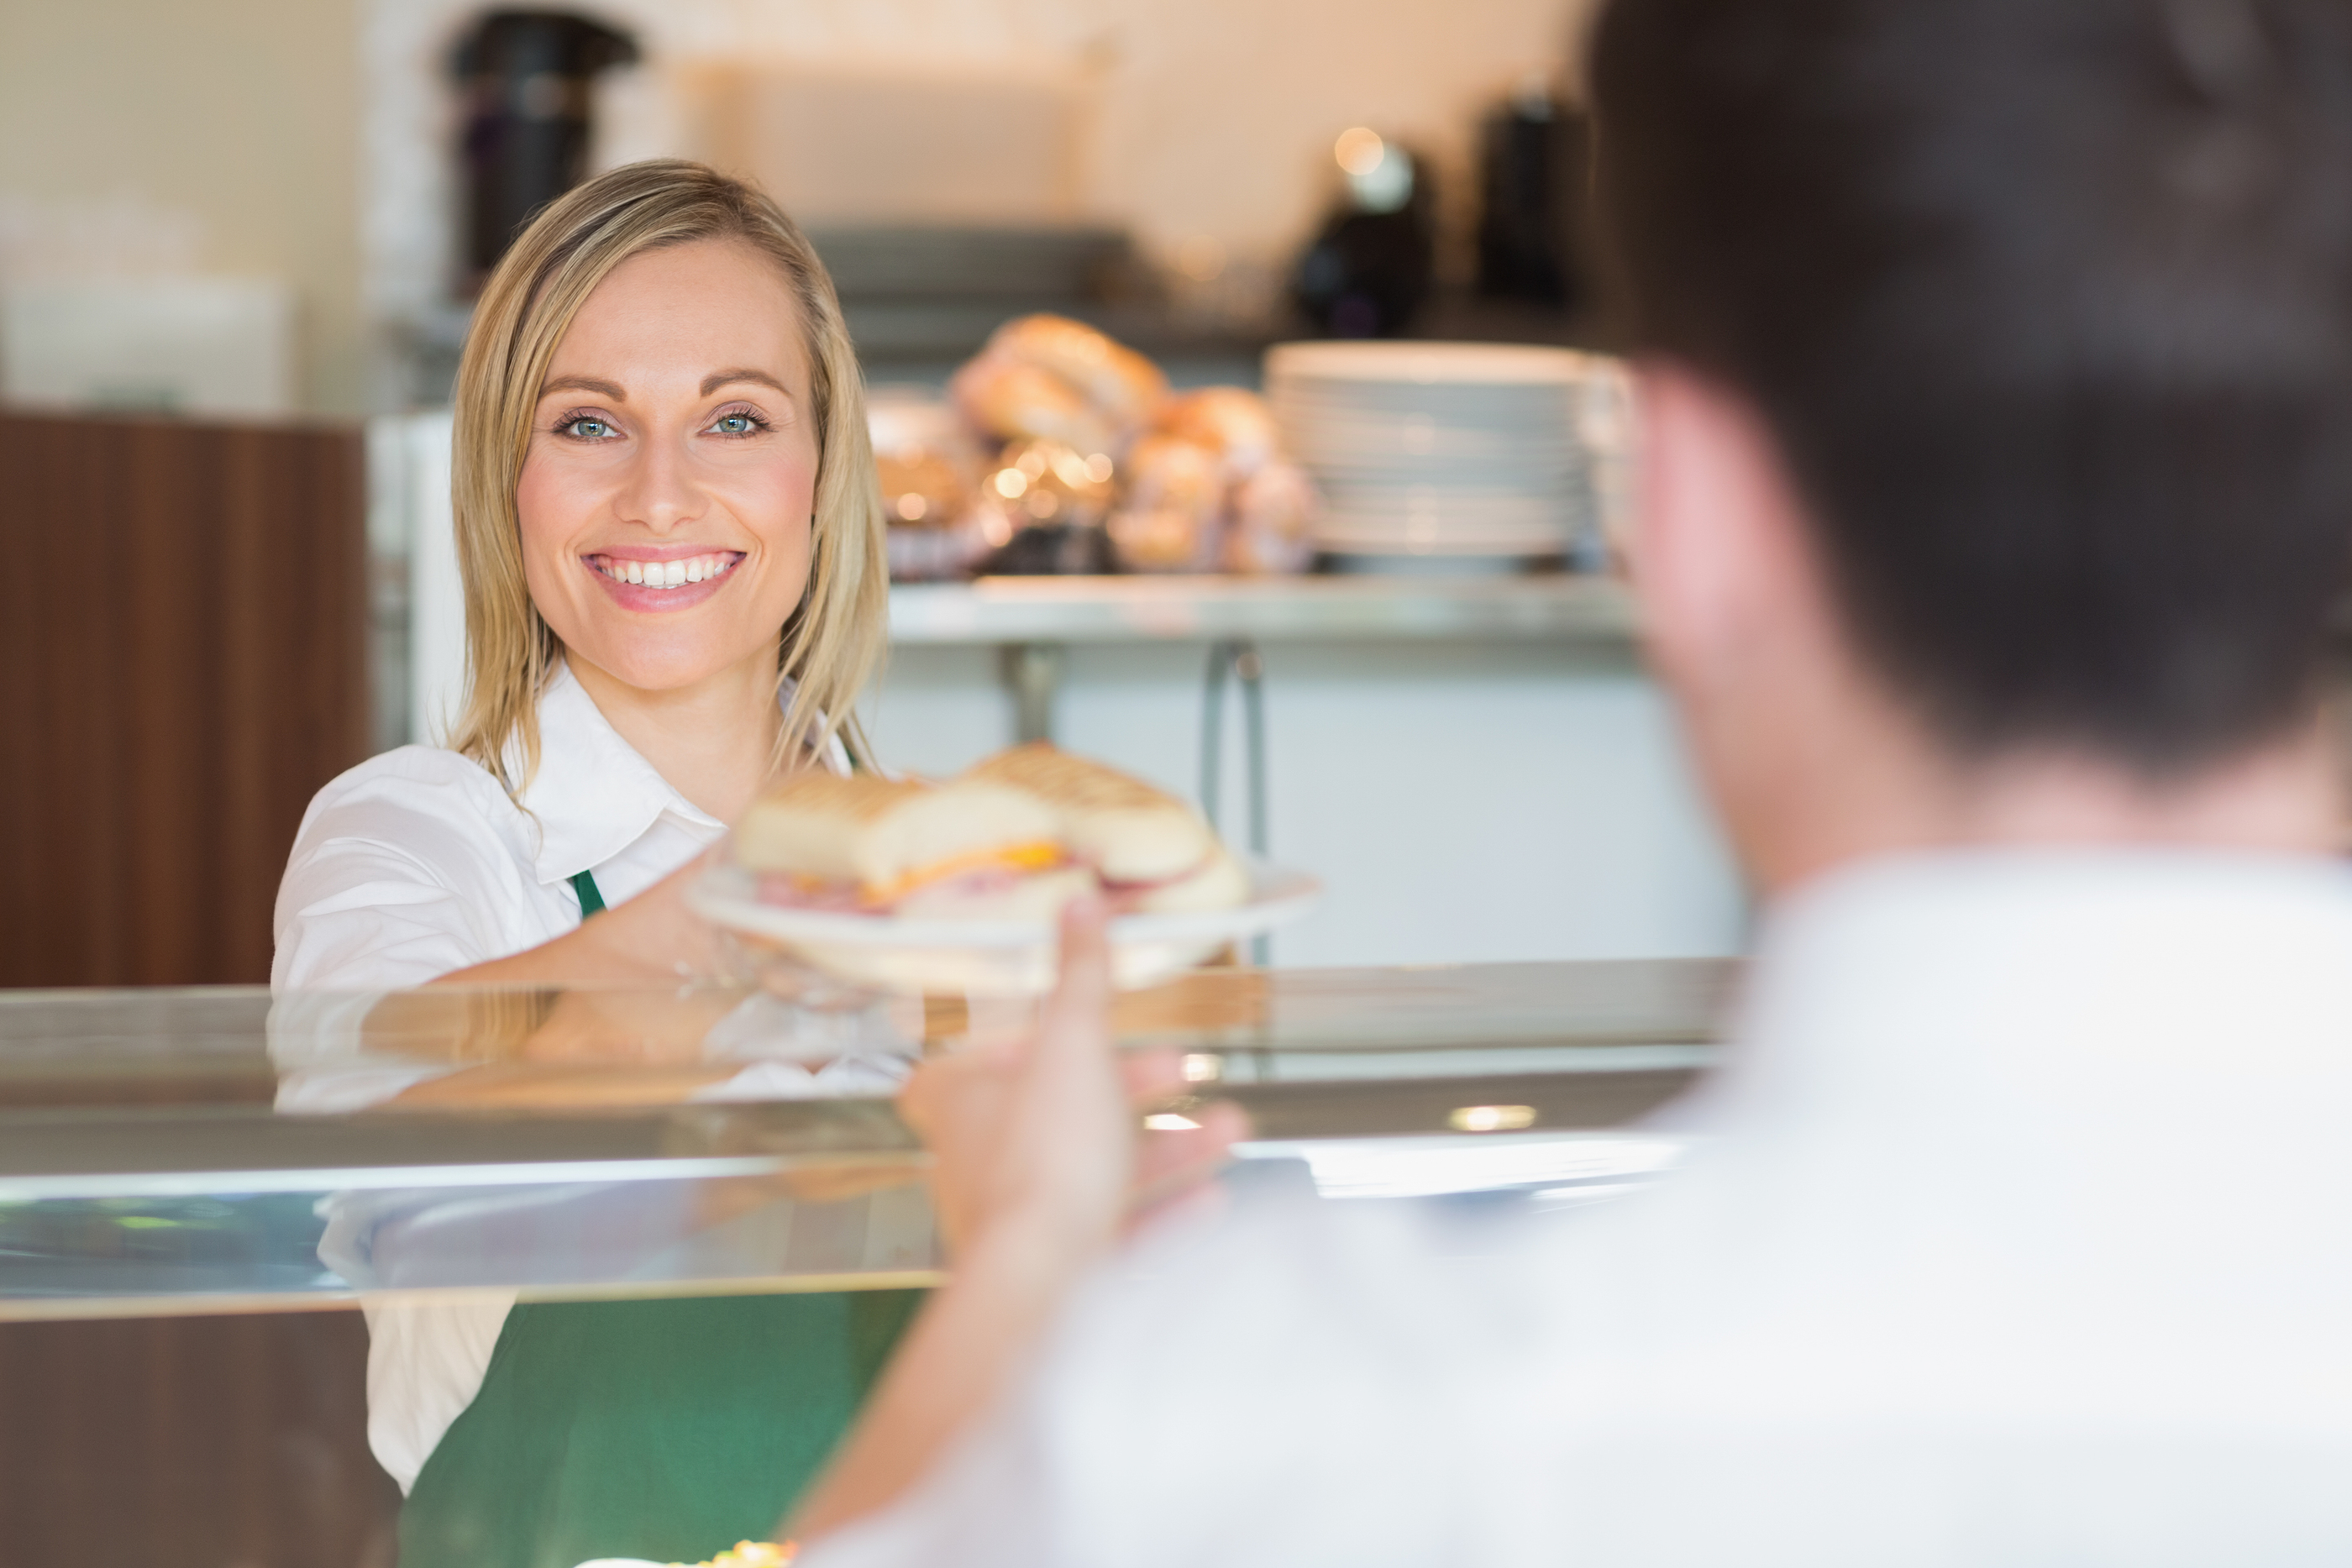 Portrait of female shop owner smiling while giving sandwich to customer in bakery